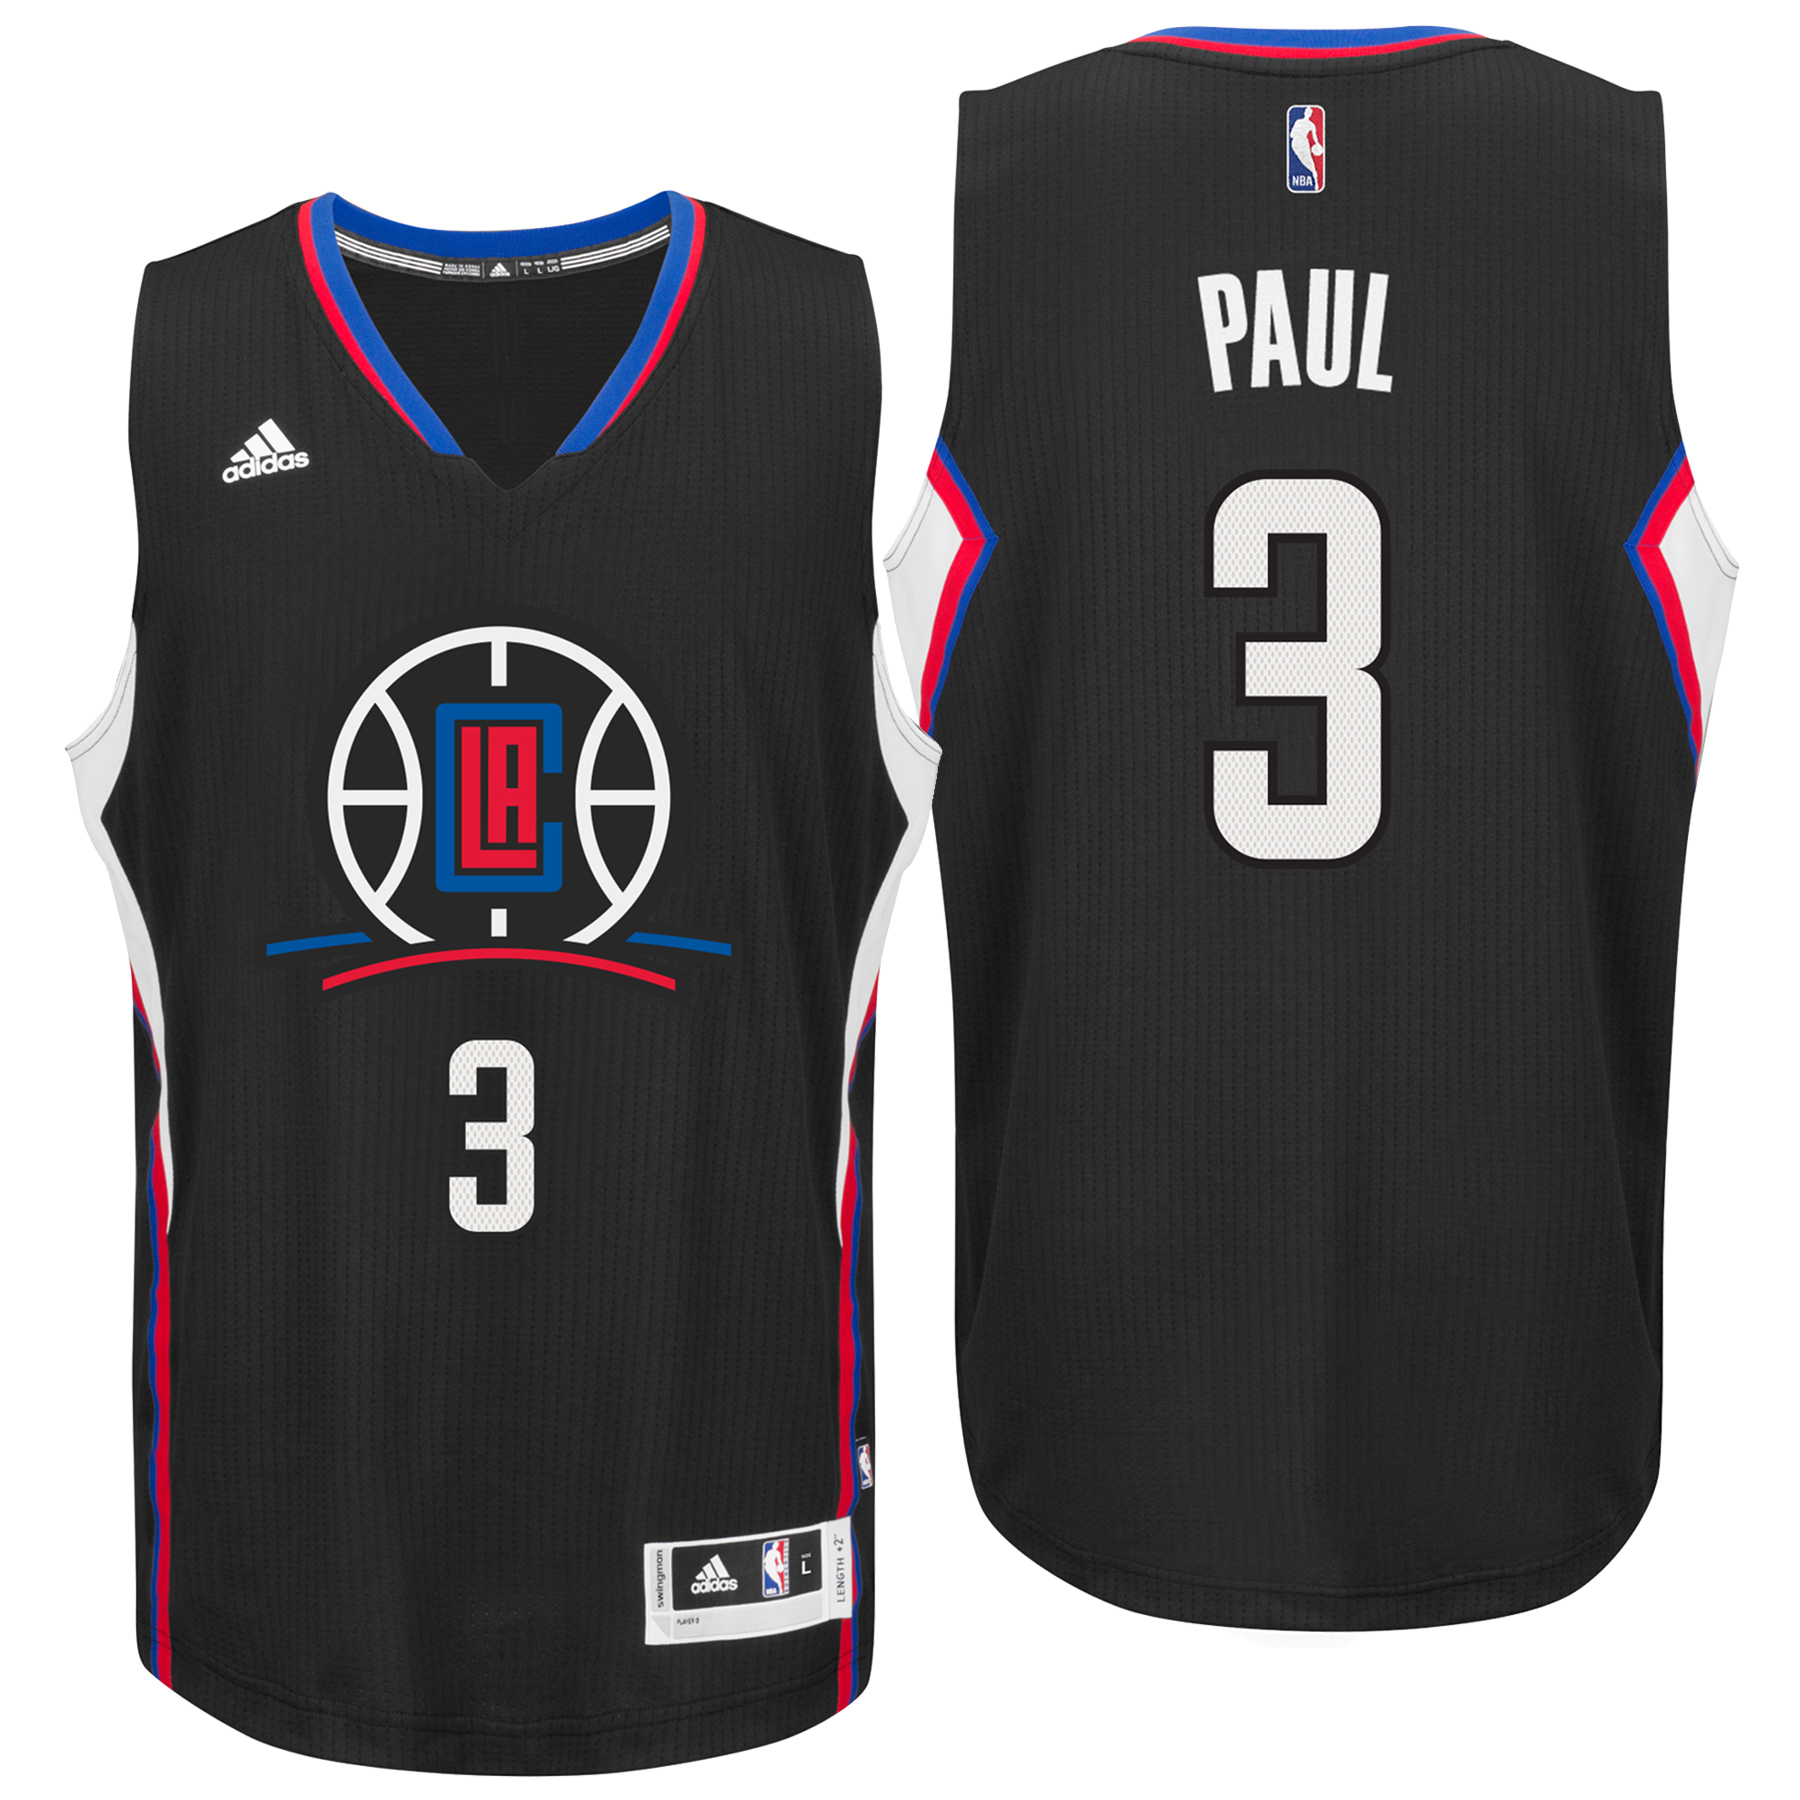 LA Clippers Alternate Swingman Jersey - Chris Paul - Mens